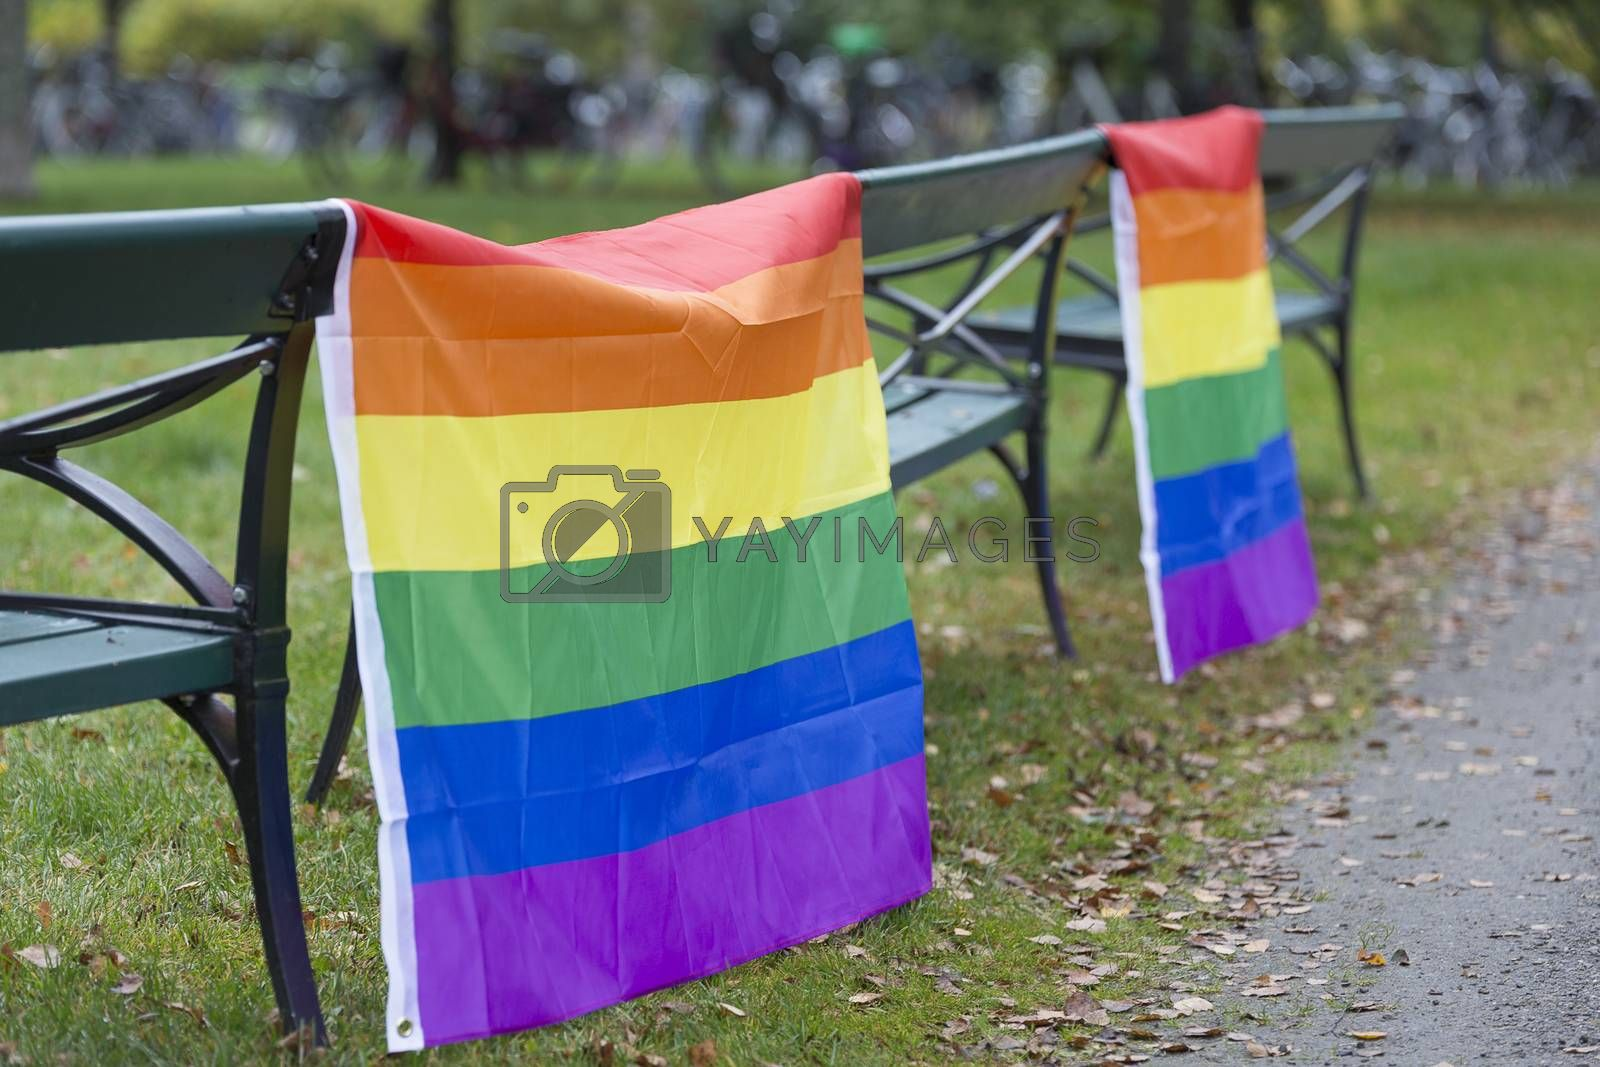 Rainbow Flags hanging on benches.